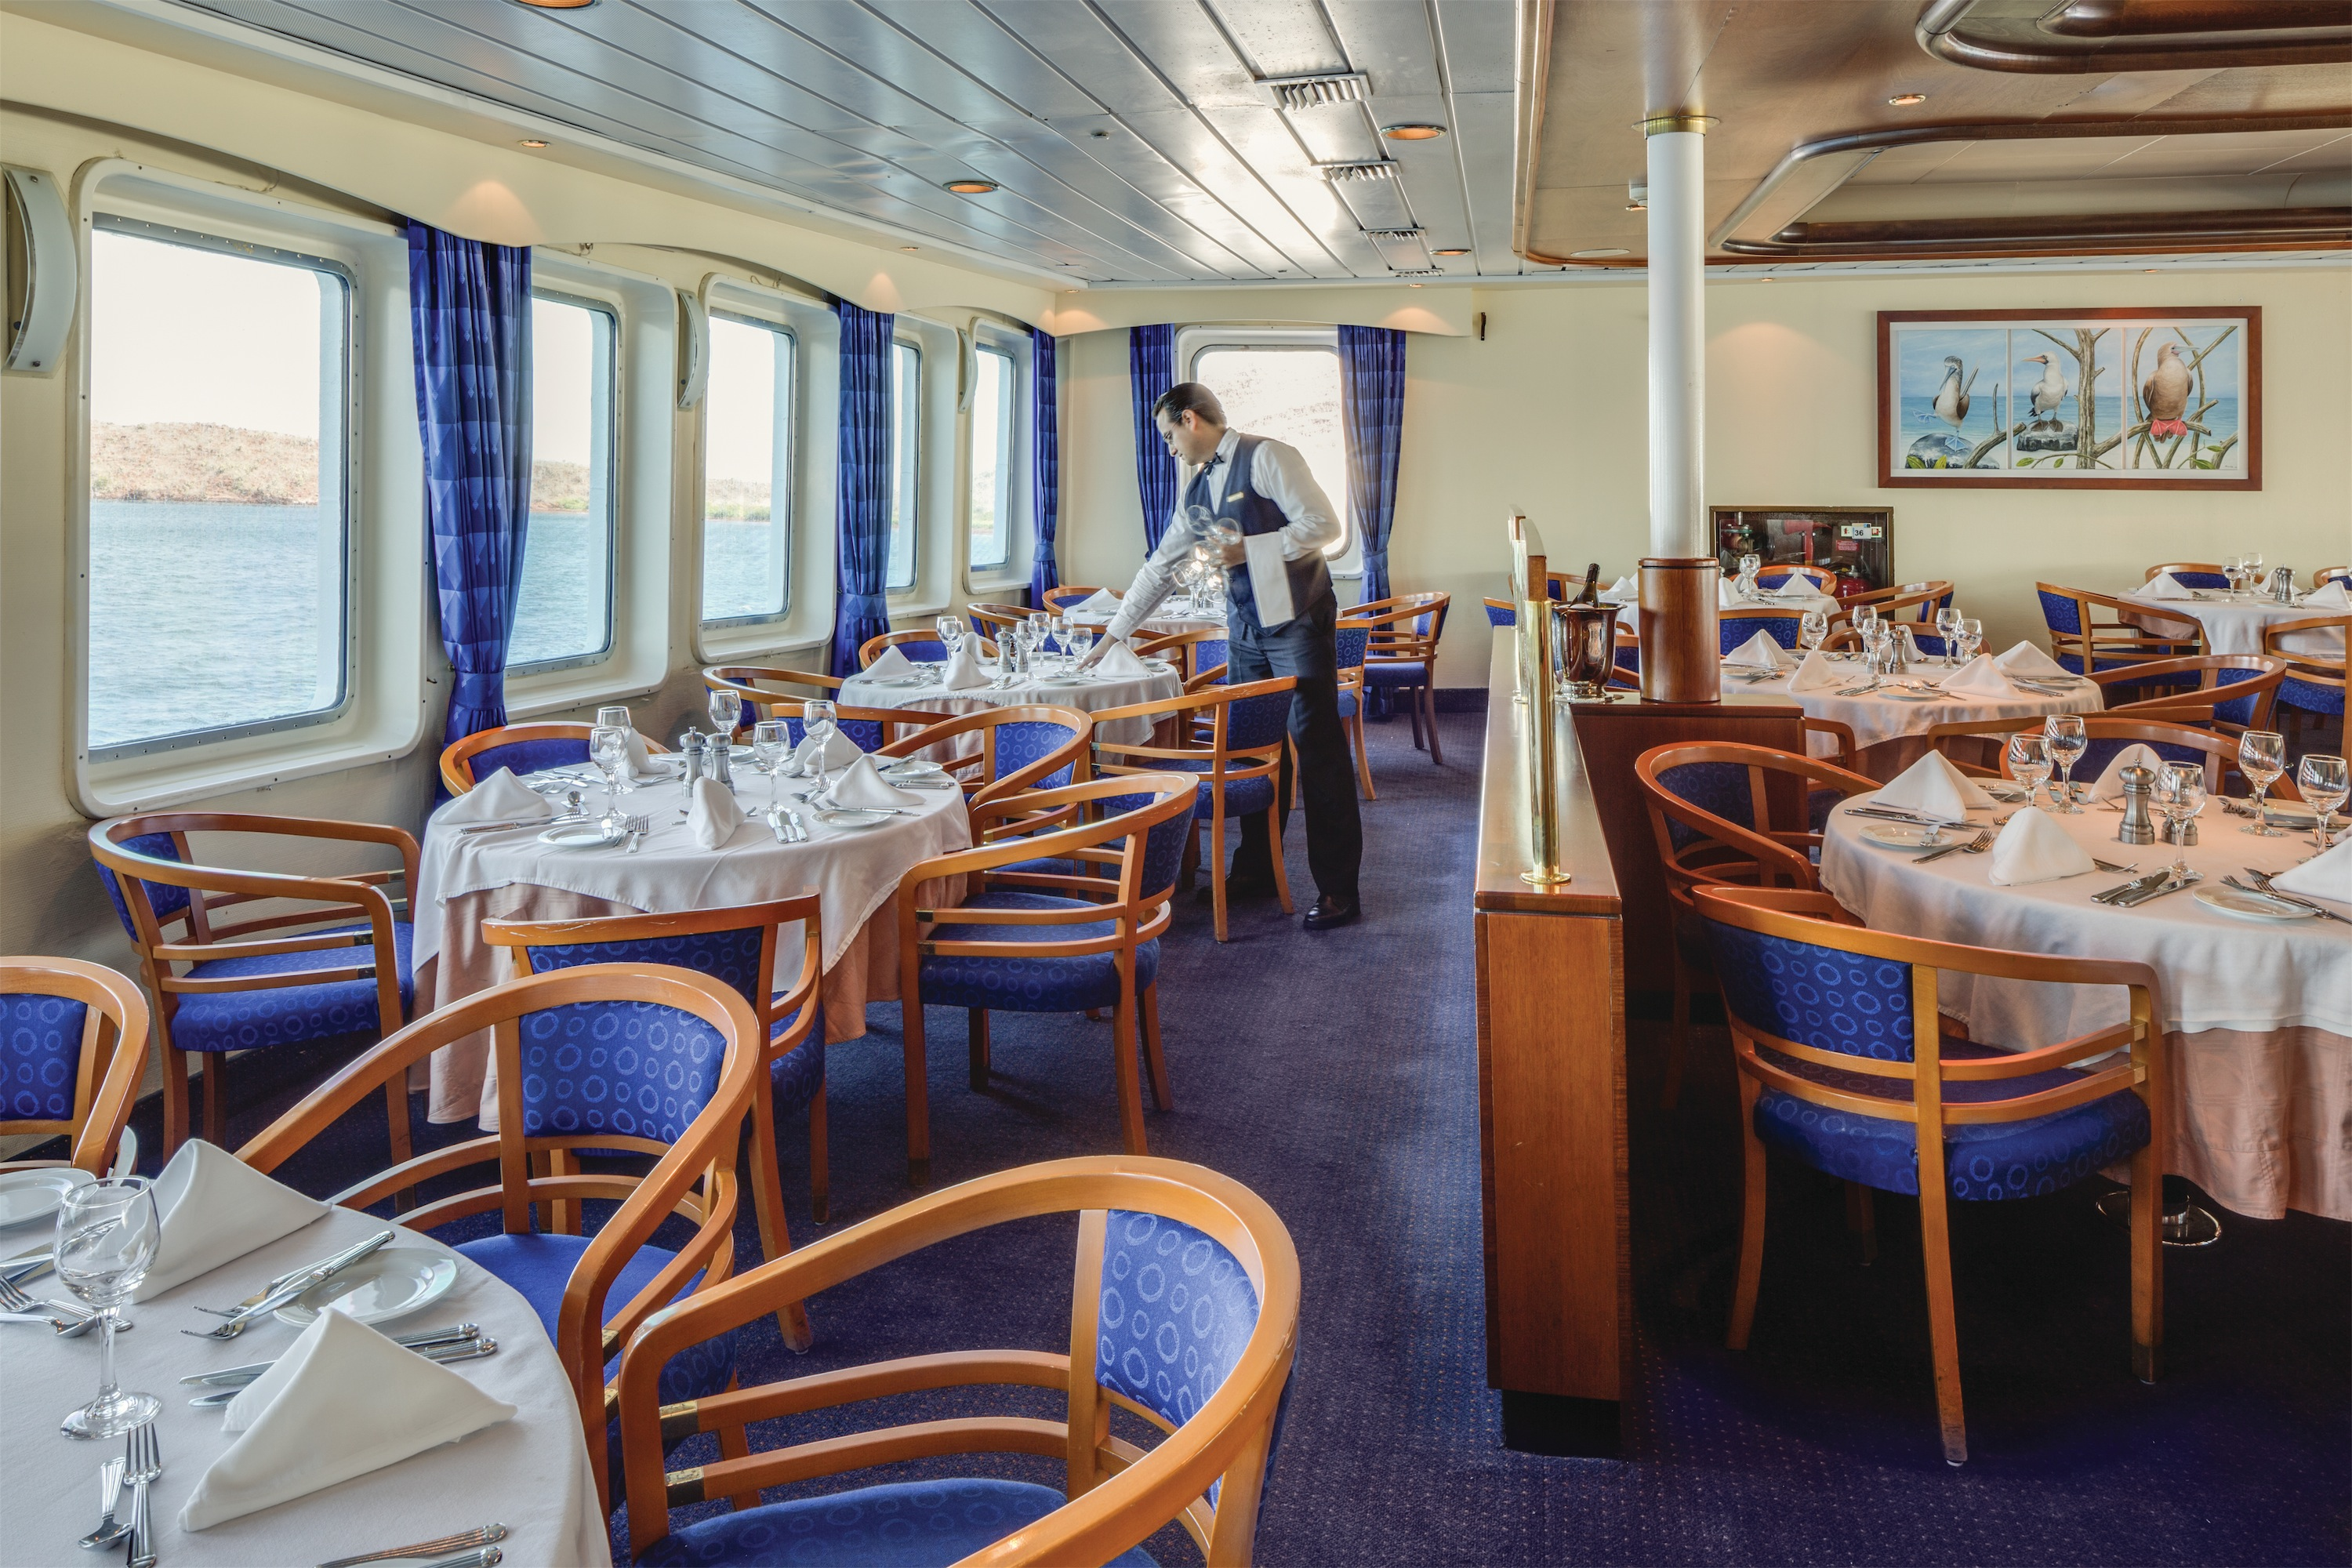 Lindblad Expeditions National Geographic Endeavour Interior Dining Room.jpg